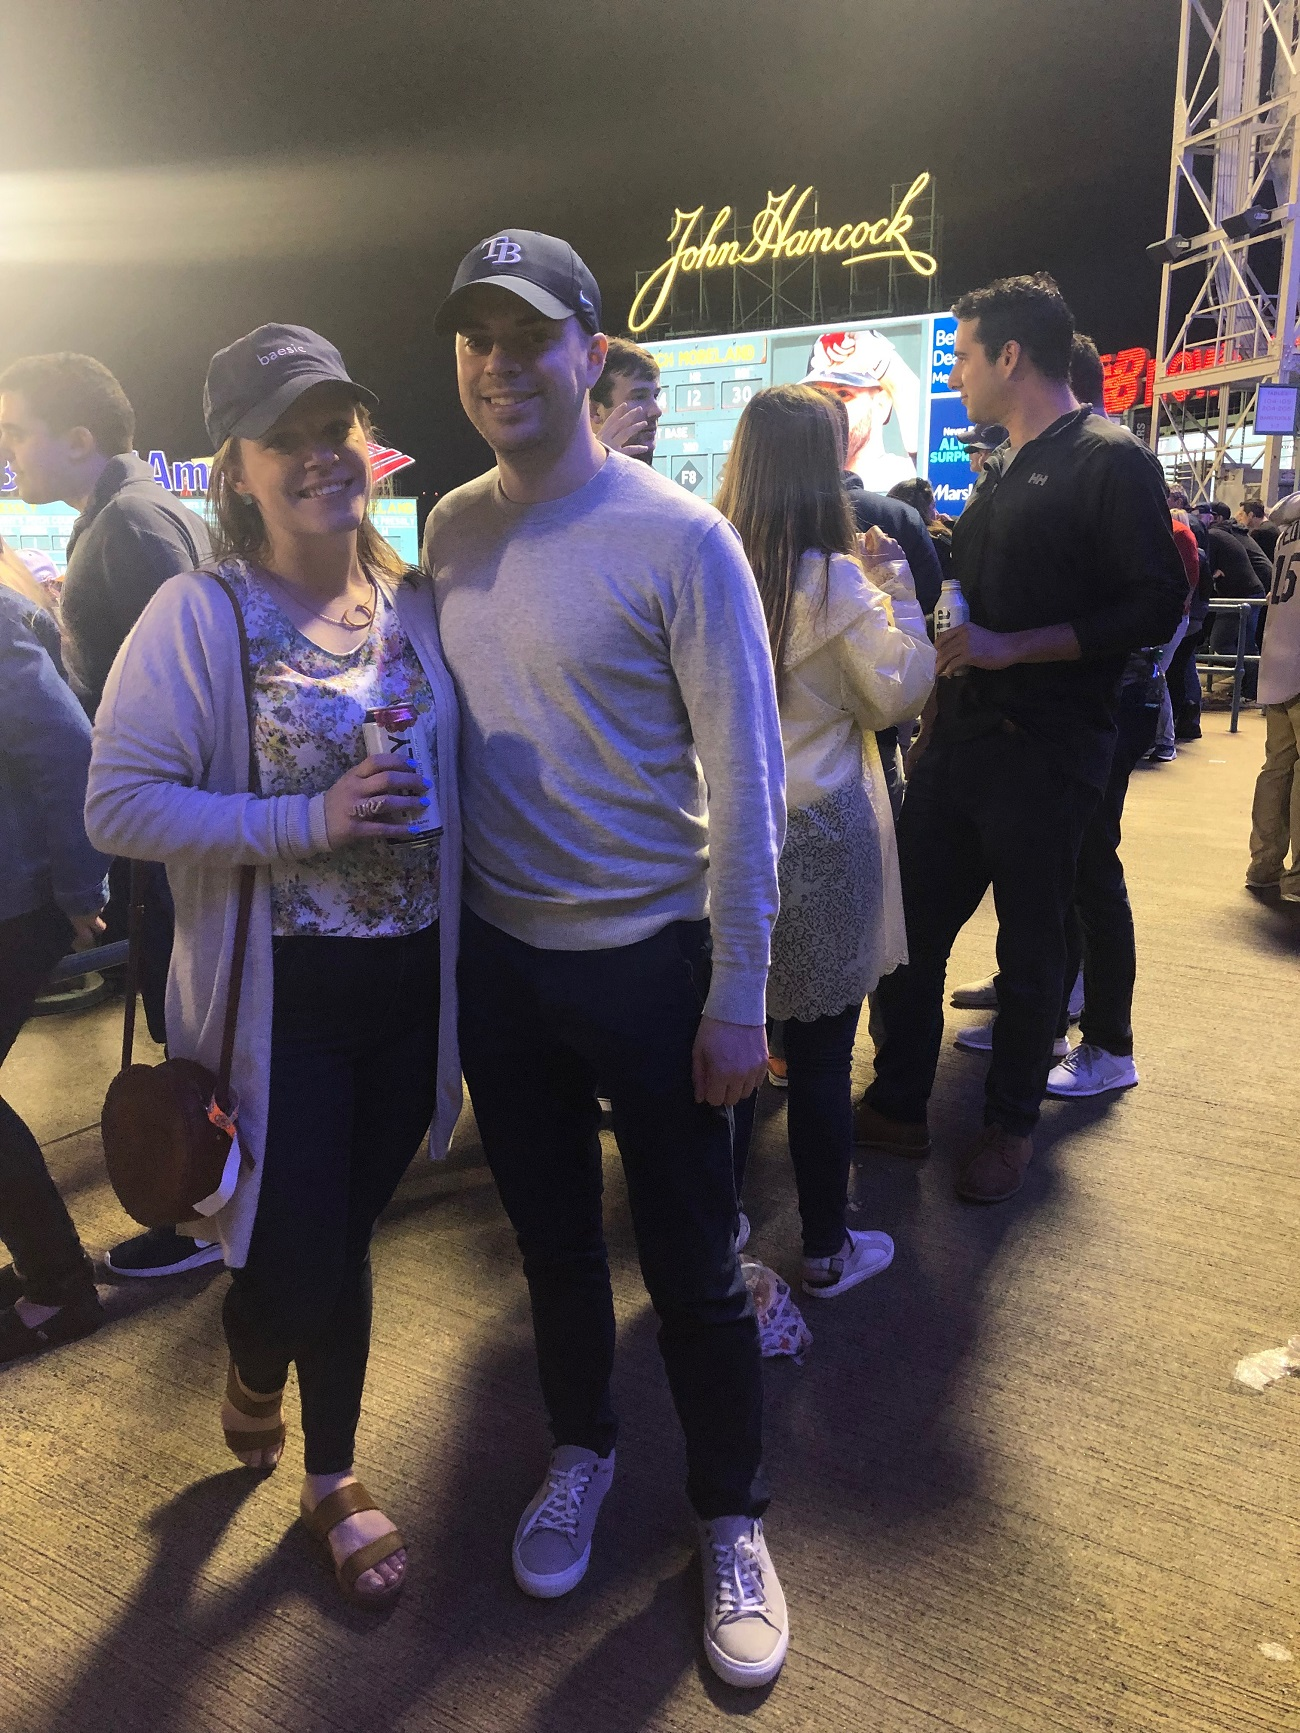 Greg and Caitlin at Fenway Park 2019